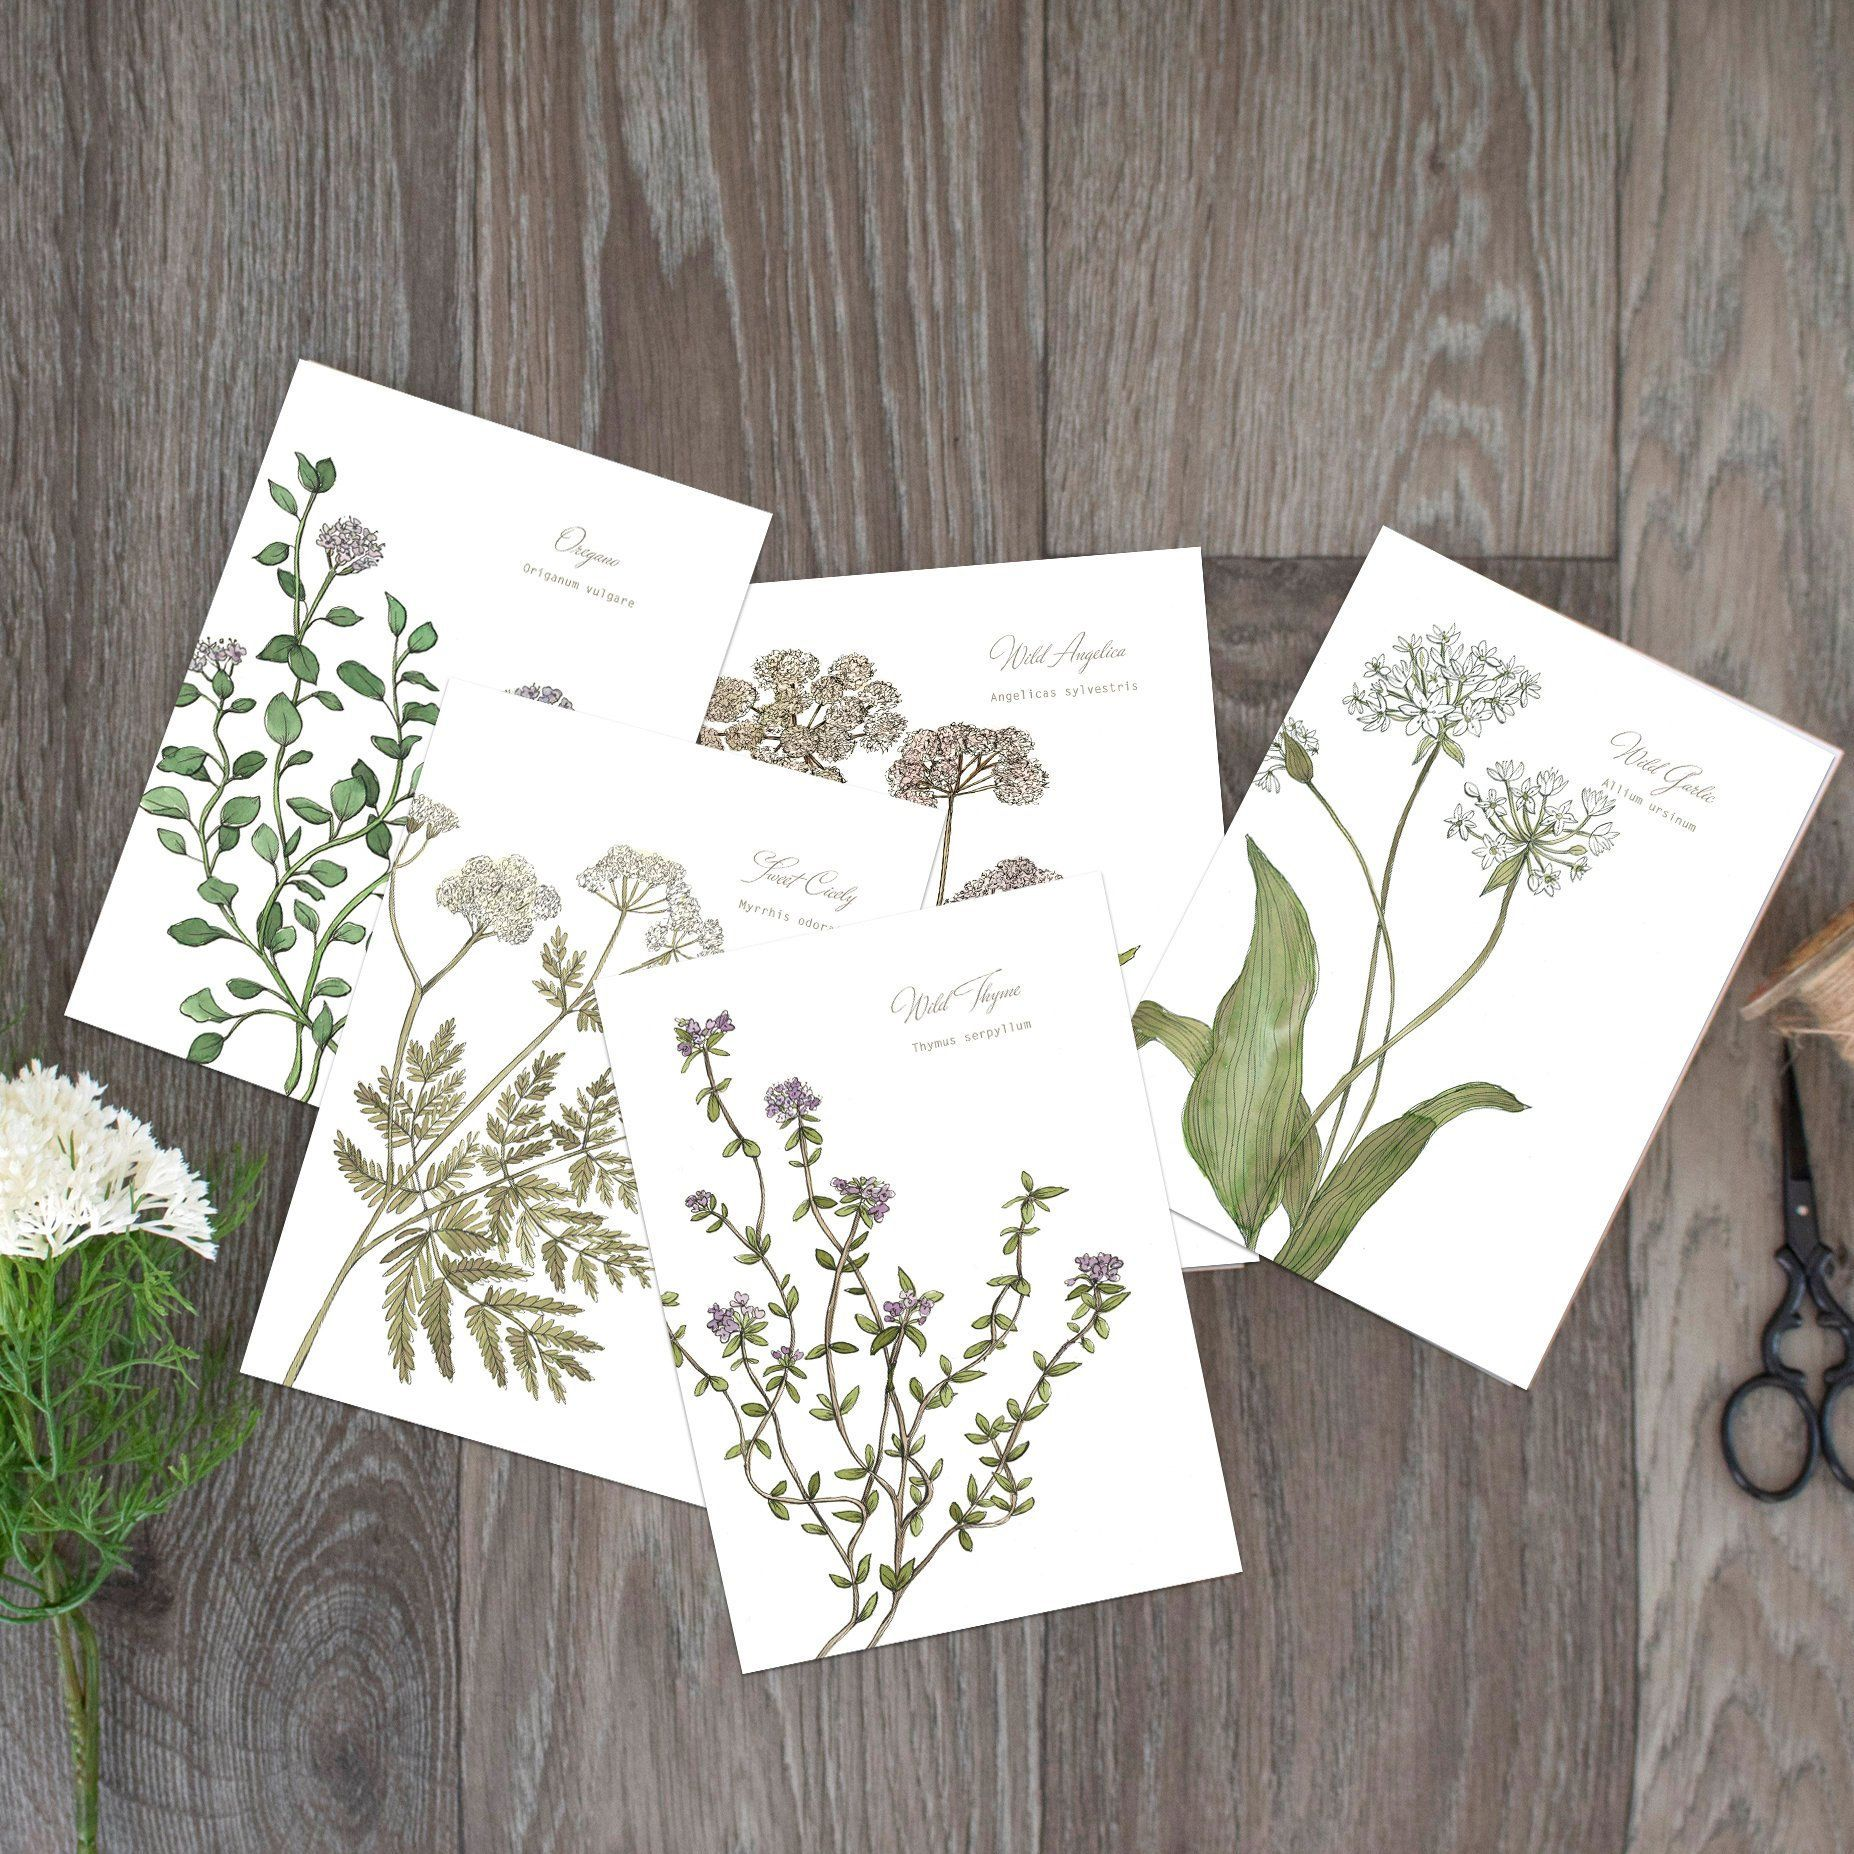 Scottish Wild Herbs Collection Of Botanical Watercolour Cards